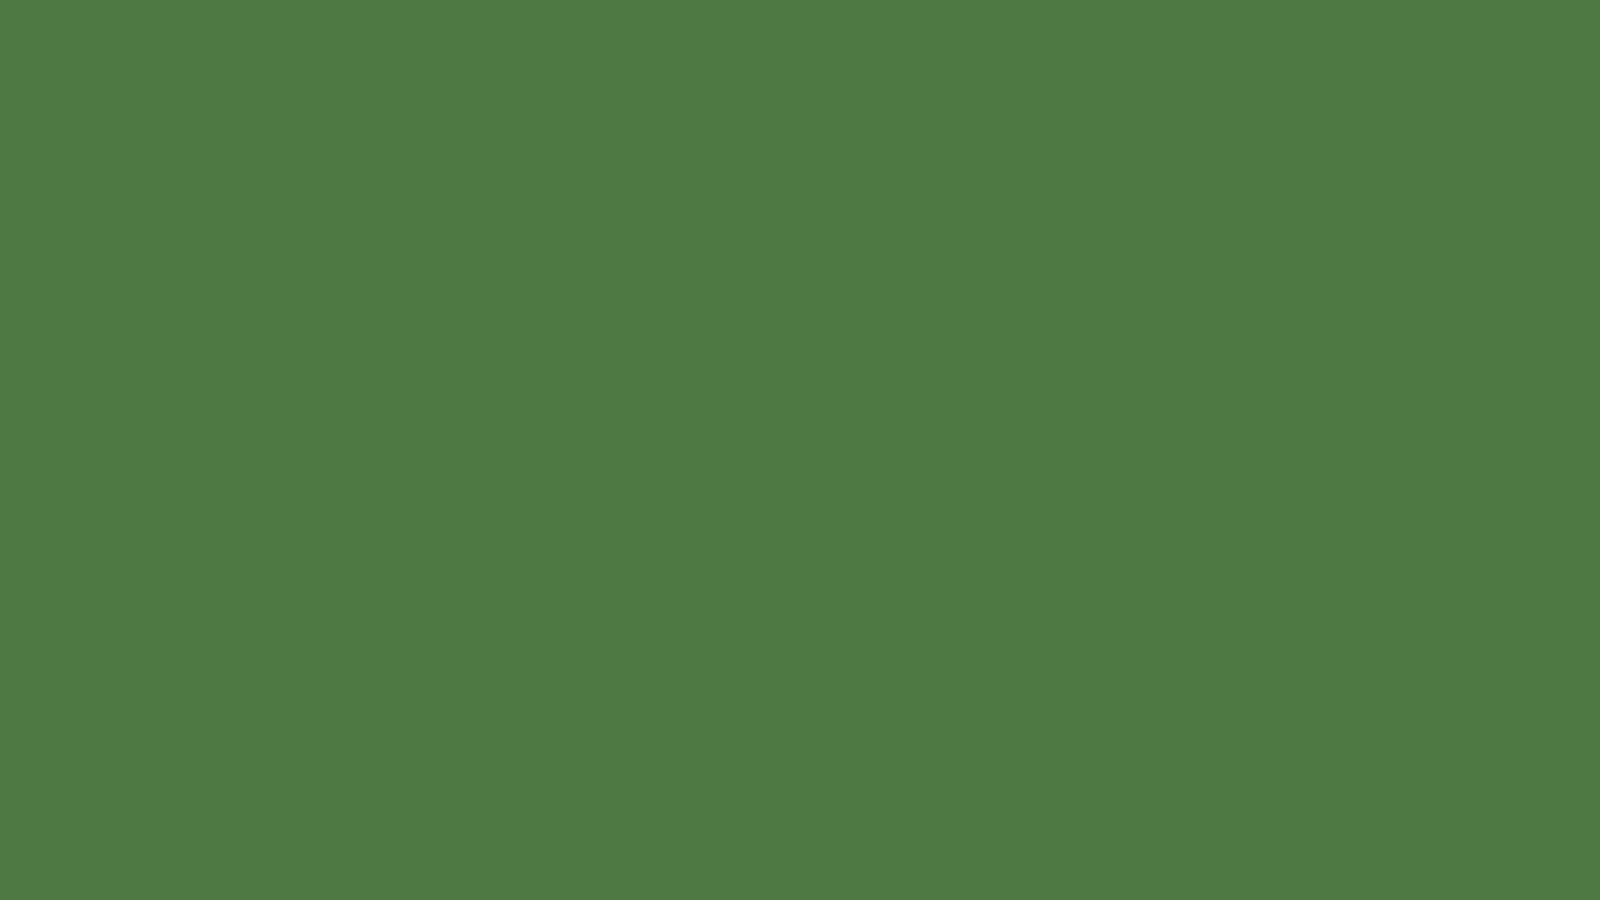 solid green background related - photo #6